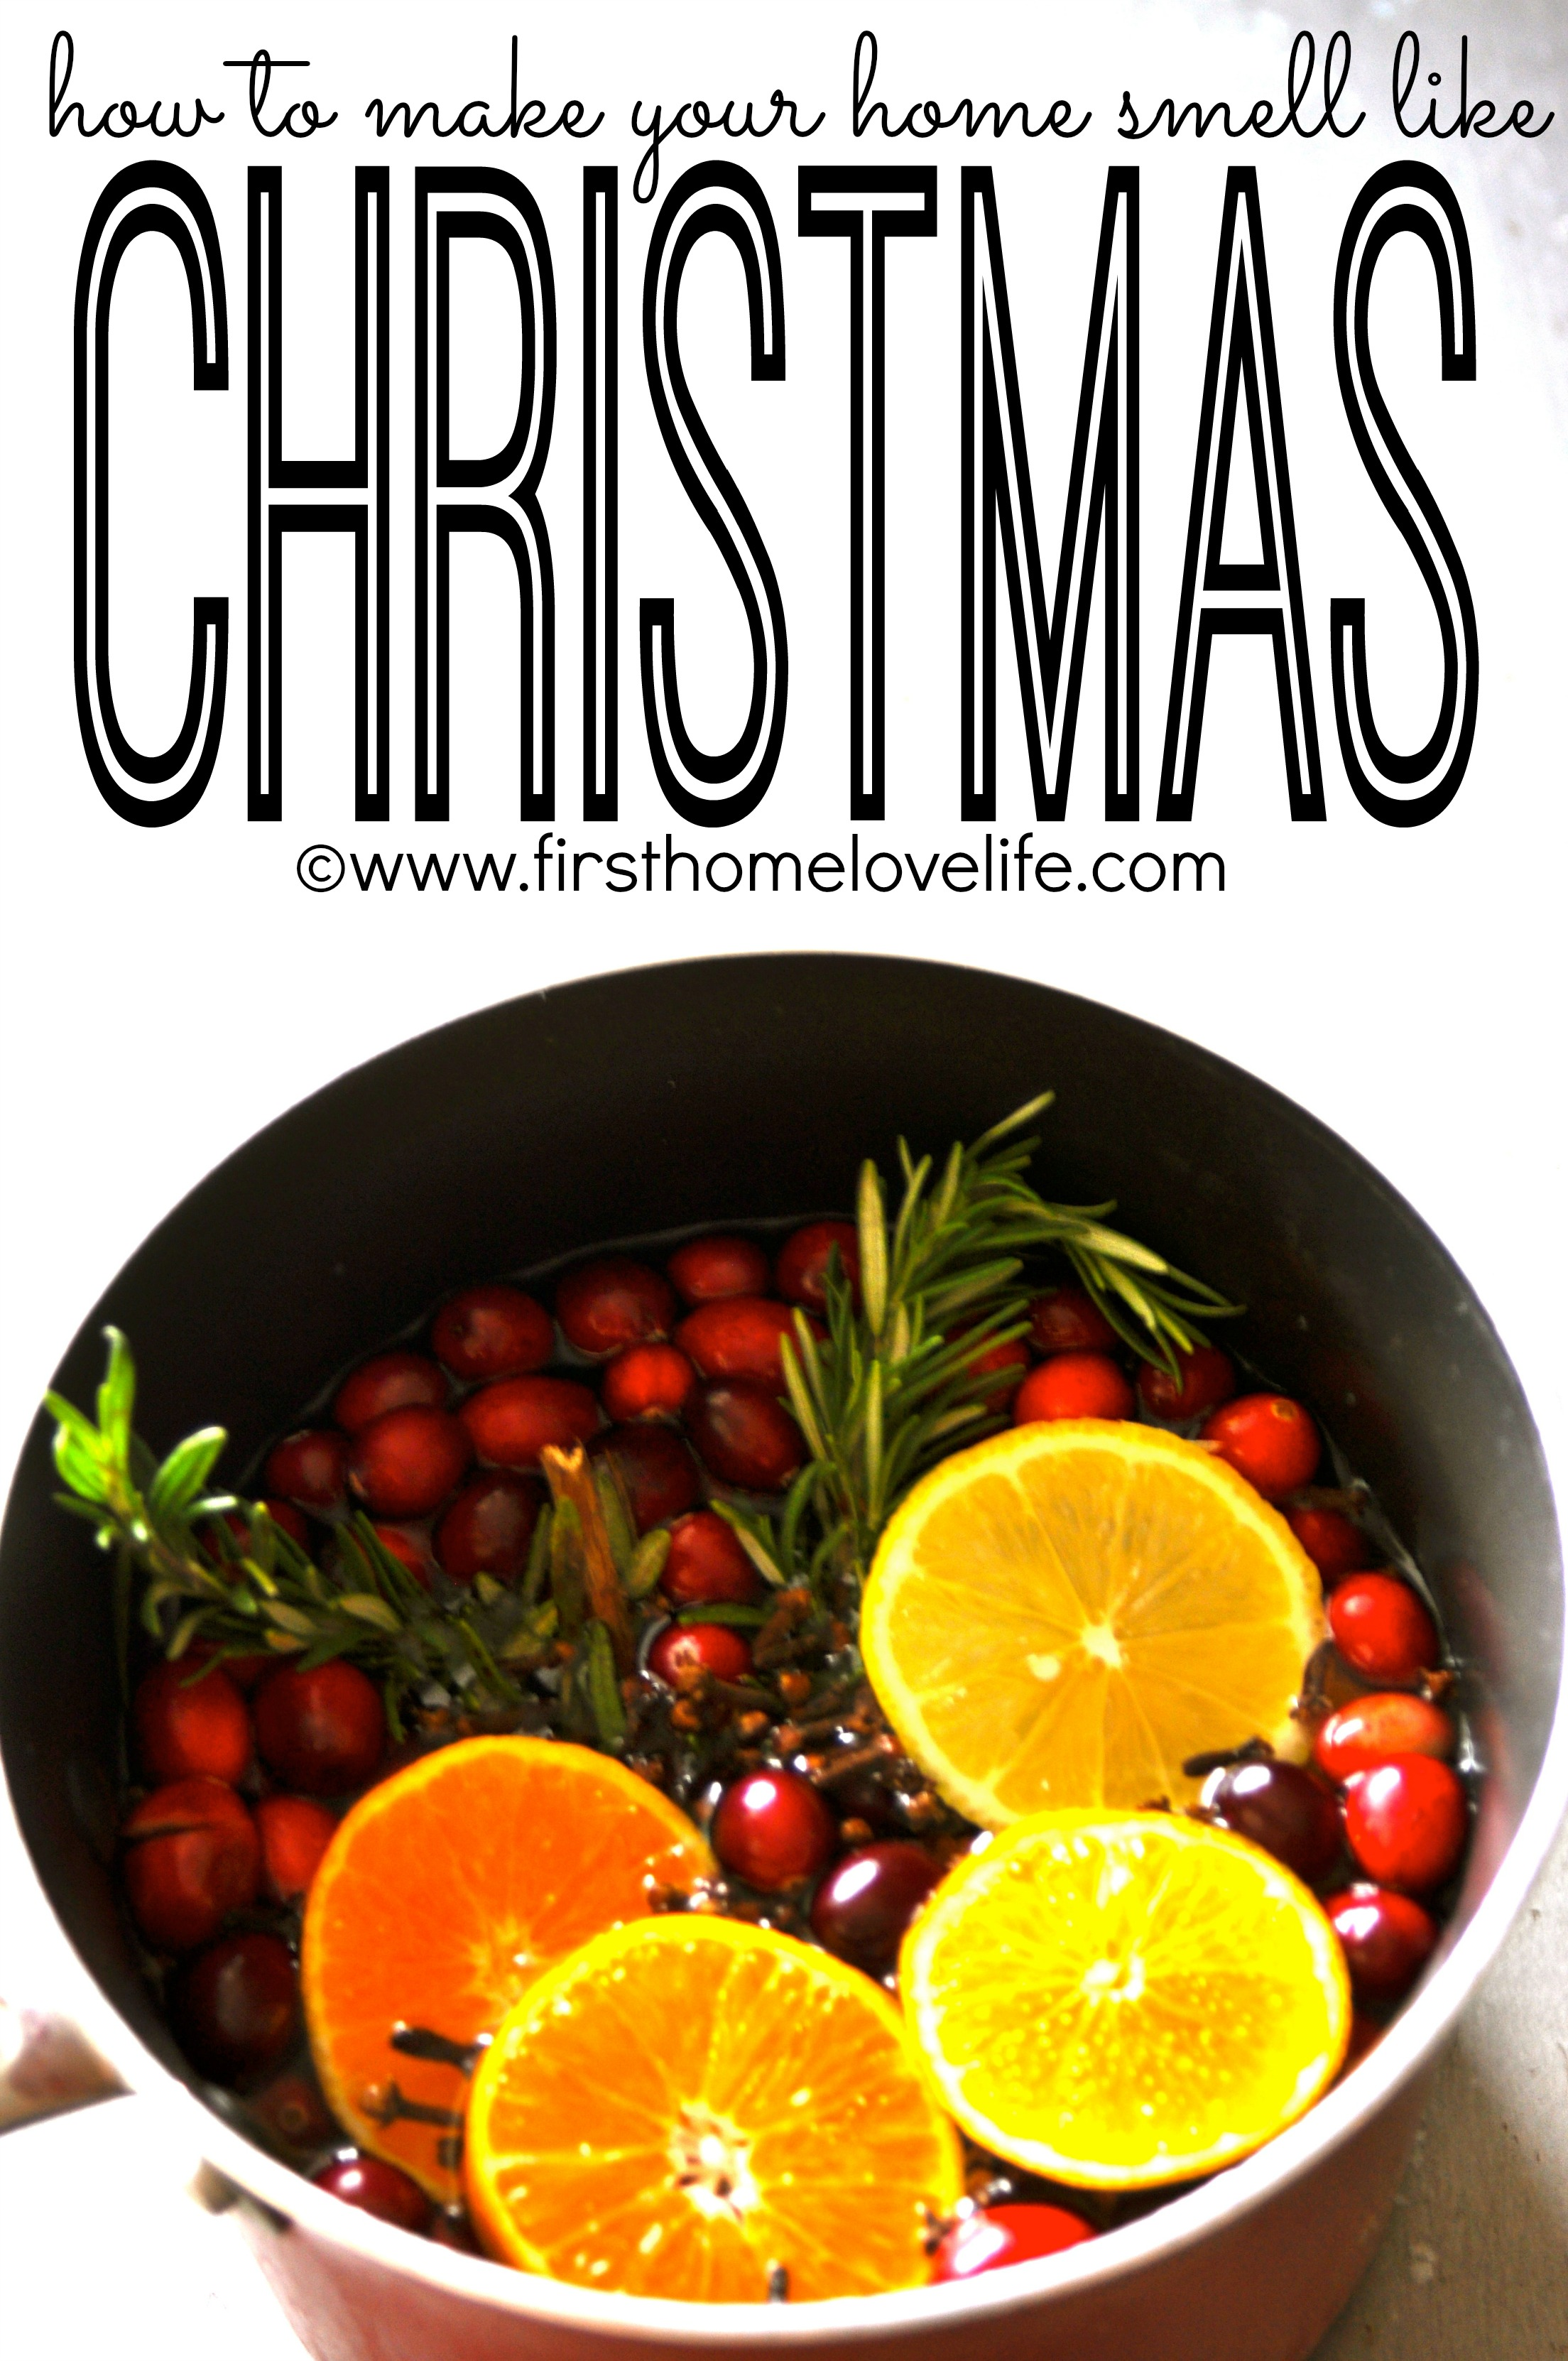 Make Your Home Smell Like Christmas First Home Love Life